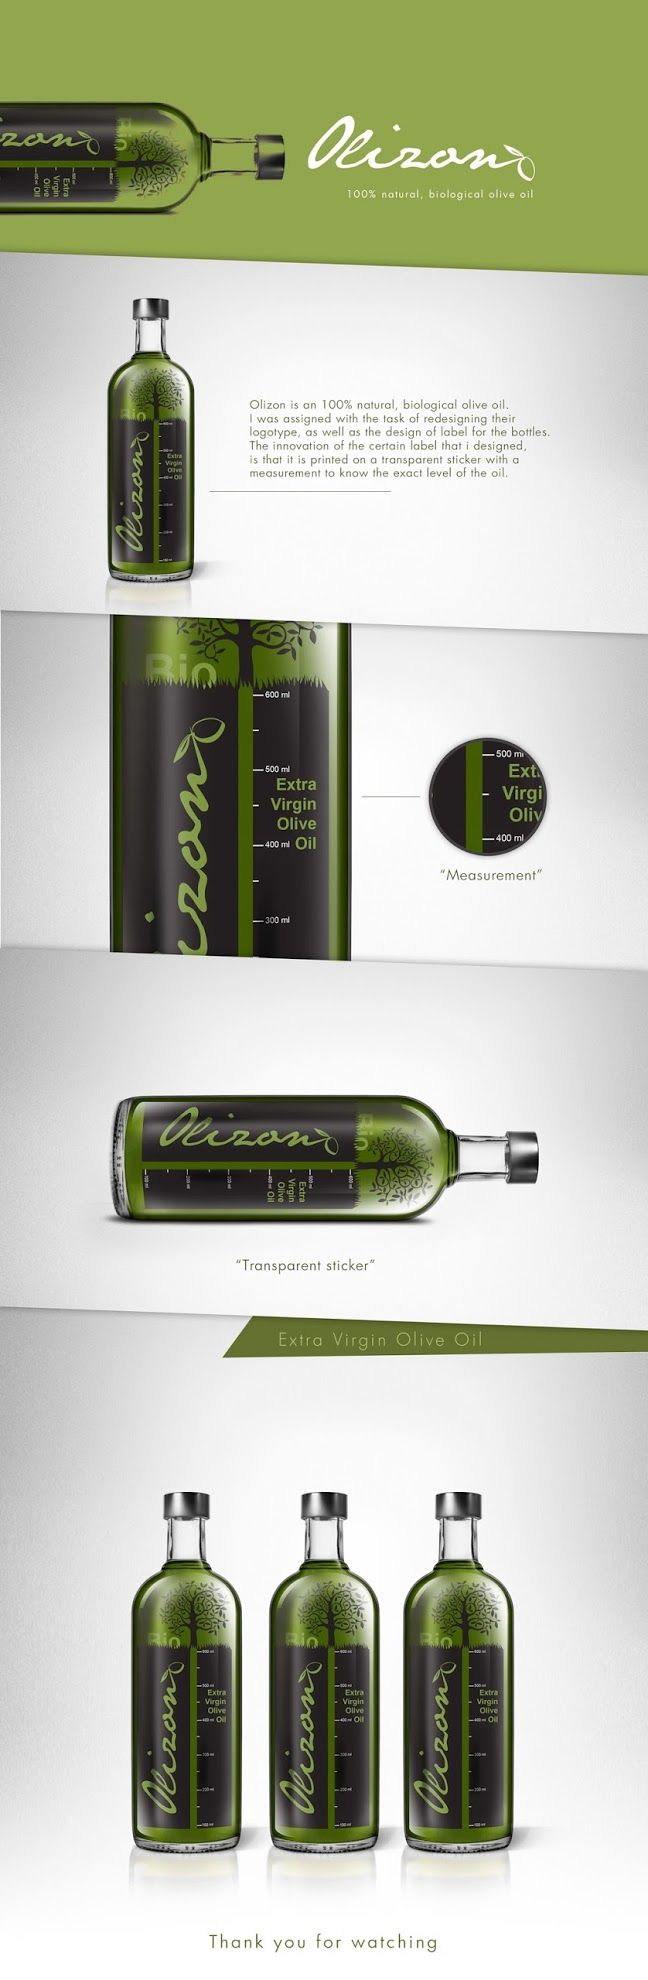 || Weekly packaging inspiration for everyone! Introducing Moire Studios a thriving website and graphic design studio. Feel Free to Follow us @moirestudiosjkt to see more outstanding pins like this. Or visit our website www.moirestudiosjkt.com to know more about us. #packaging #graphicDesign ||